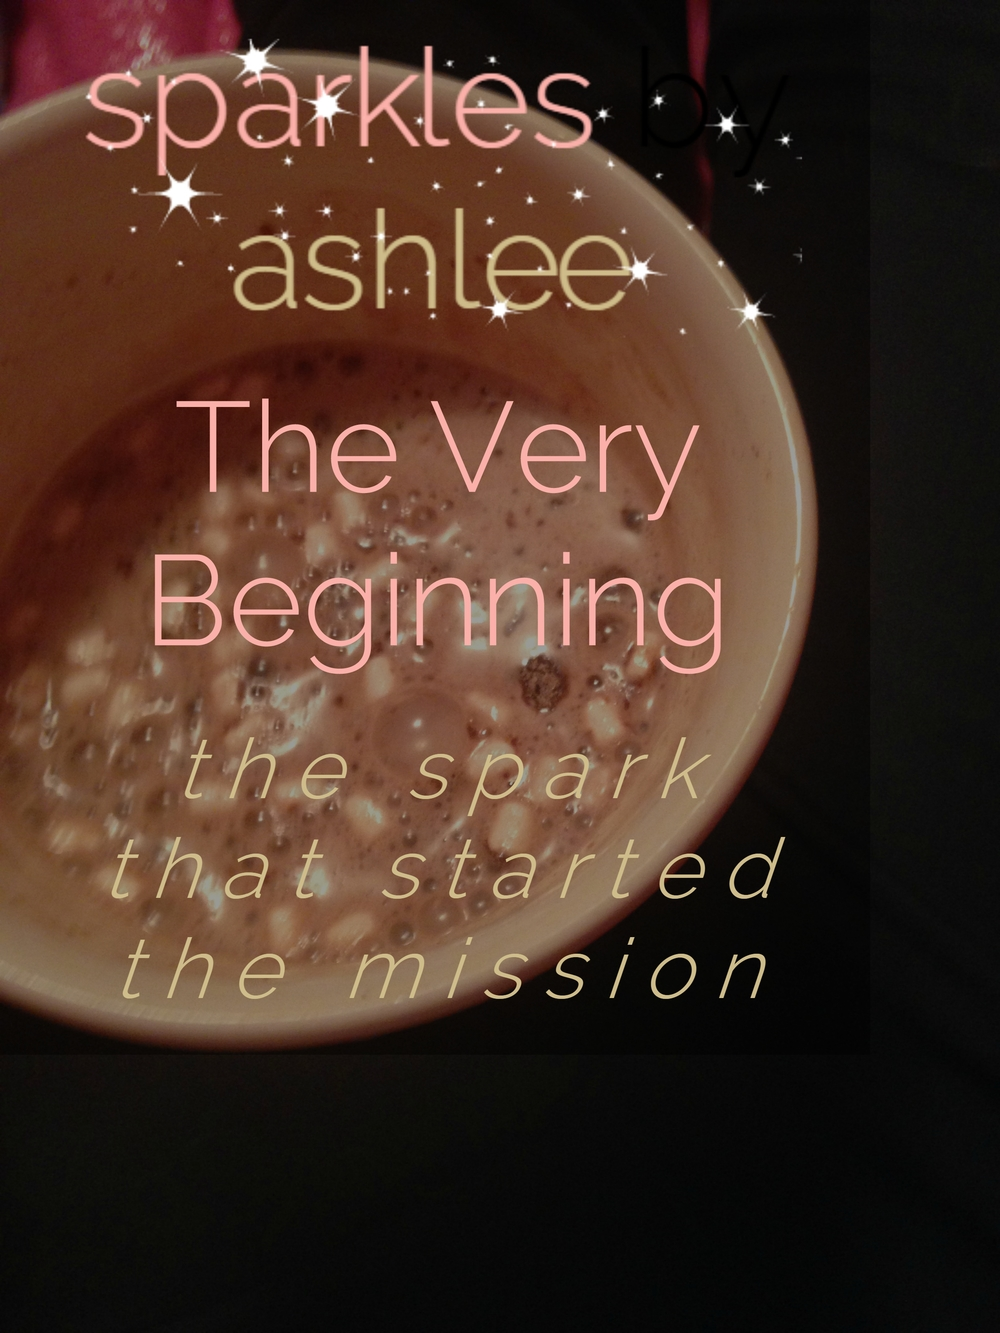 The-Very-Beginning-Sparkles-by-Ashlee.jpg